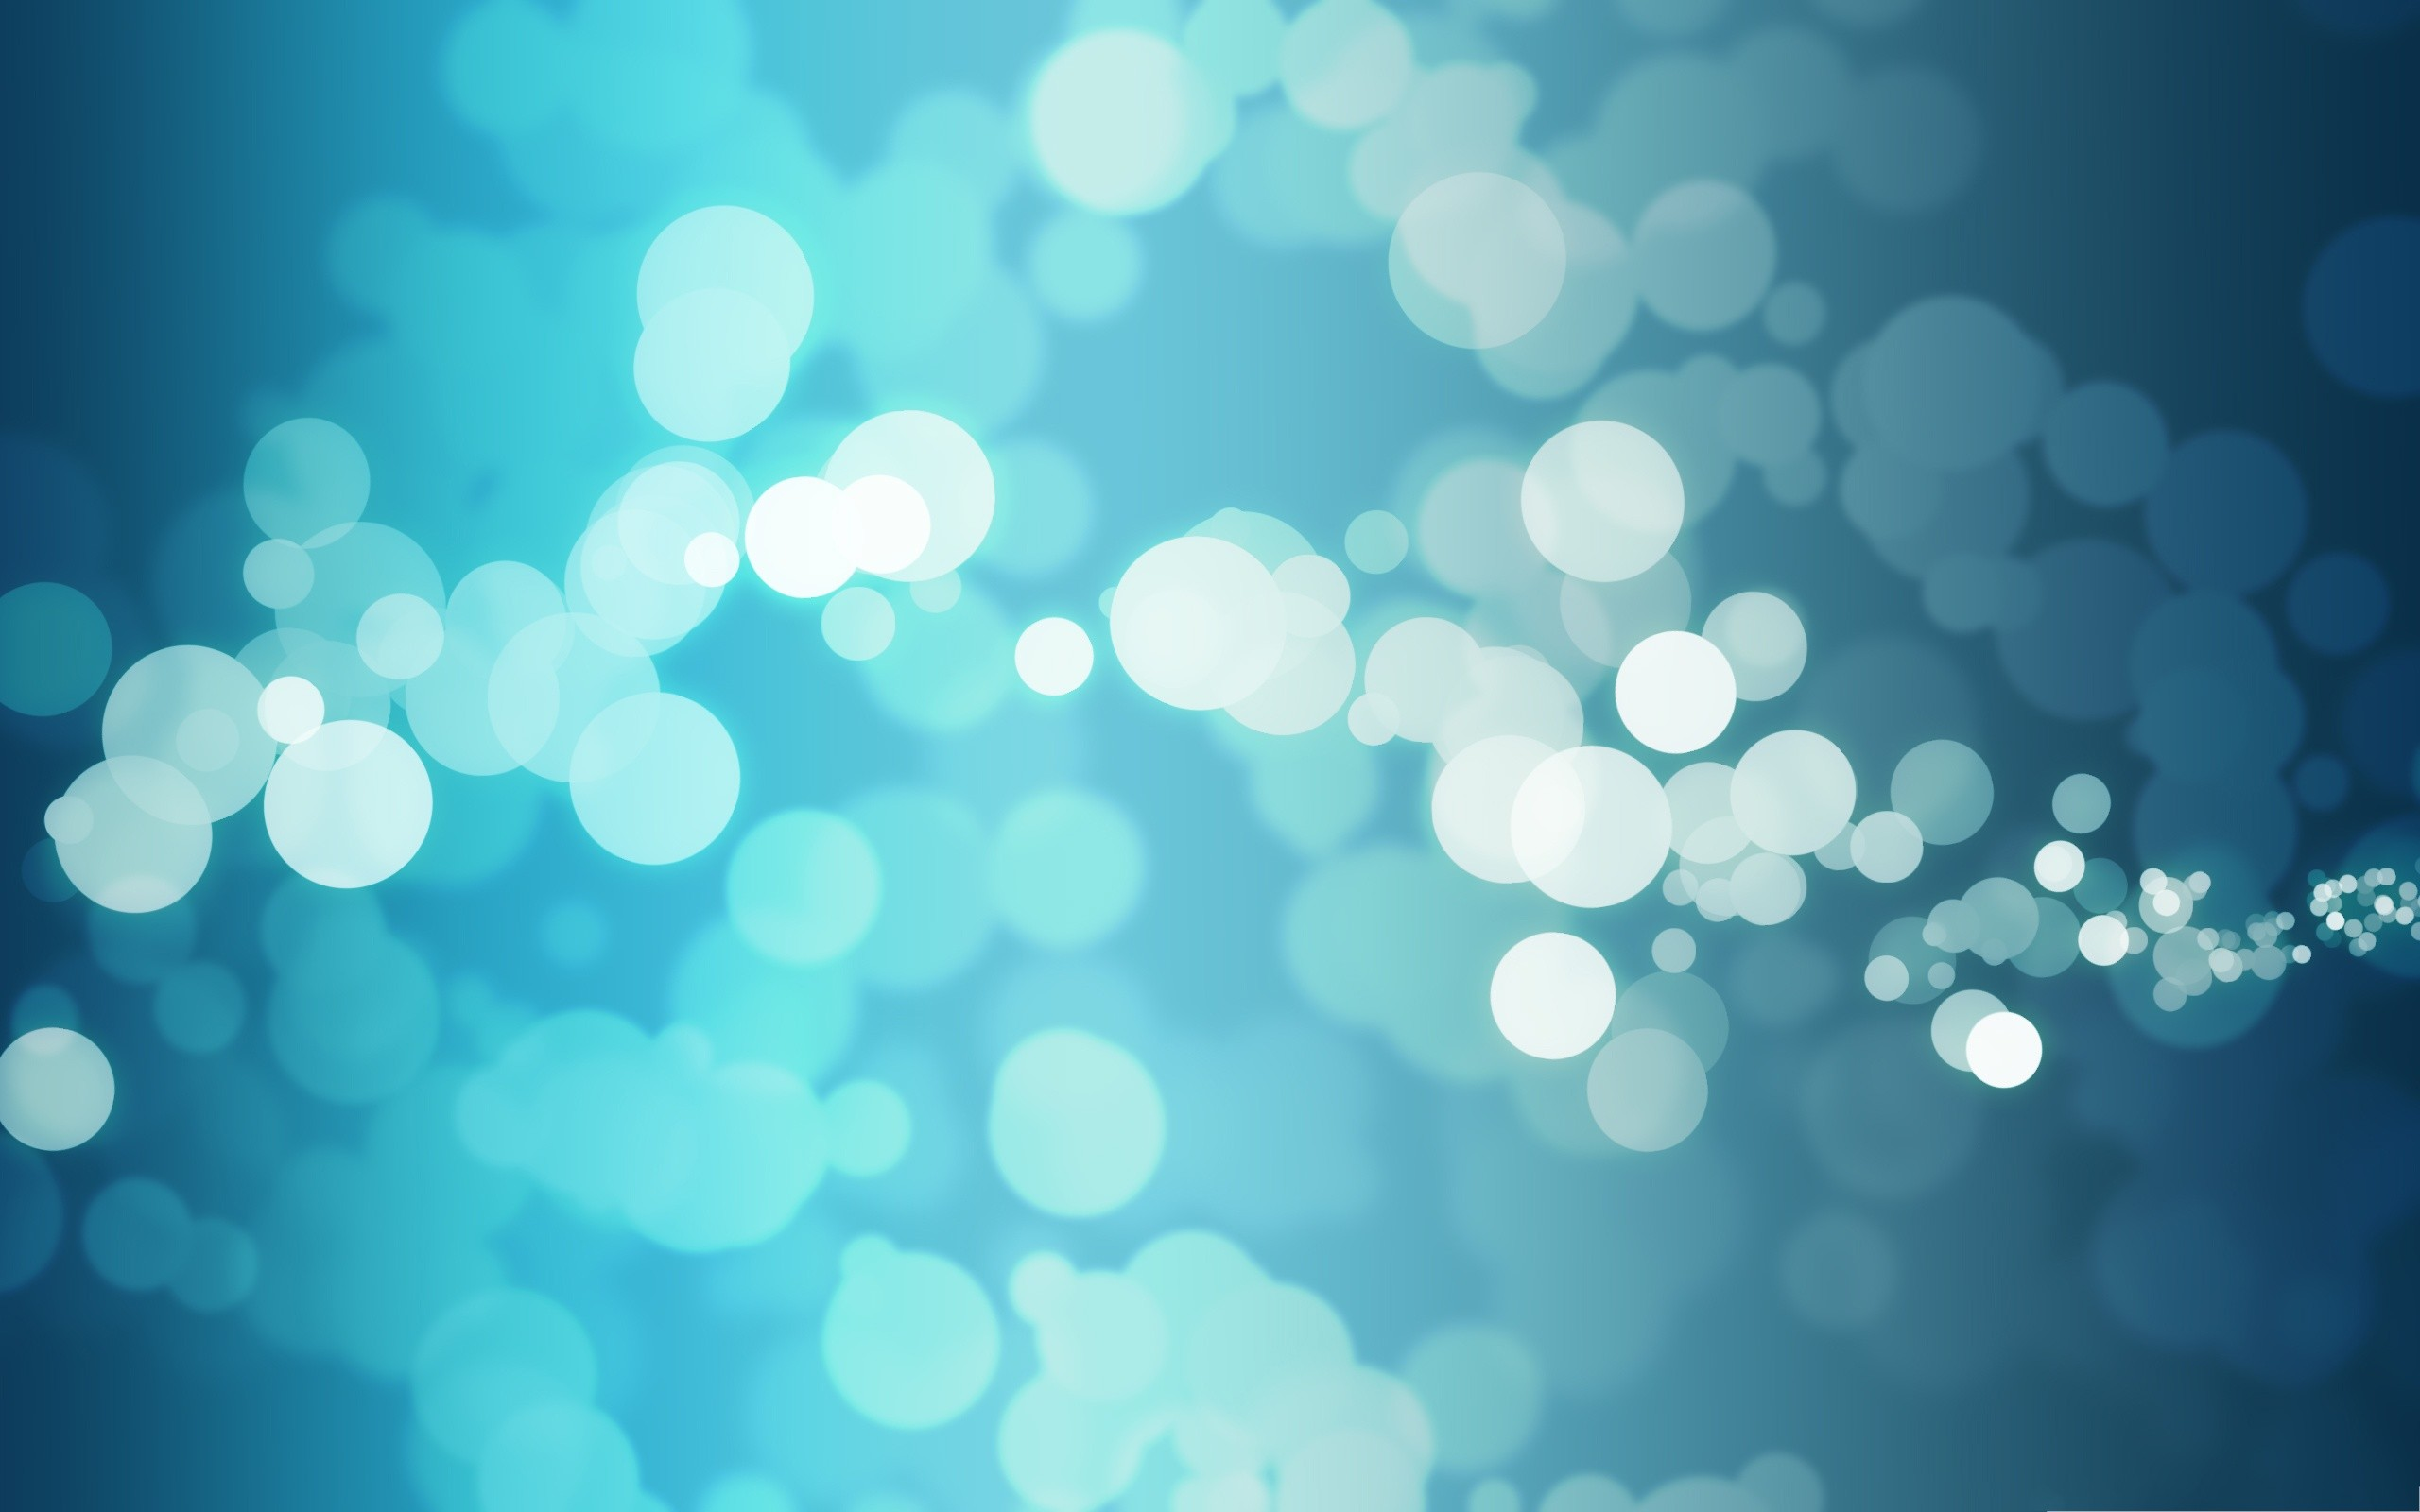 2560x1600 Free Blue Bubbles Wallpaper